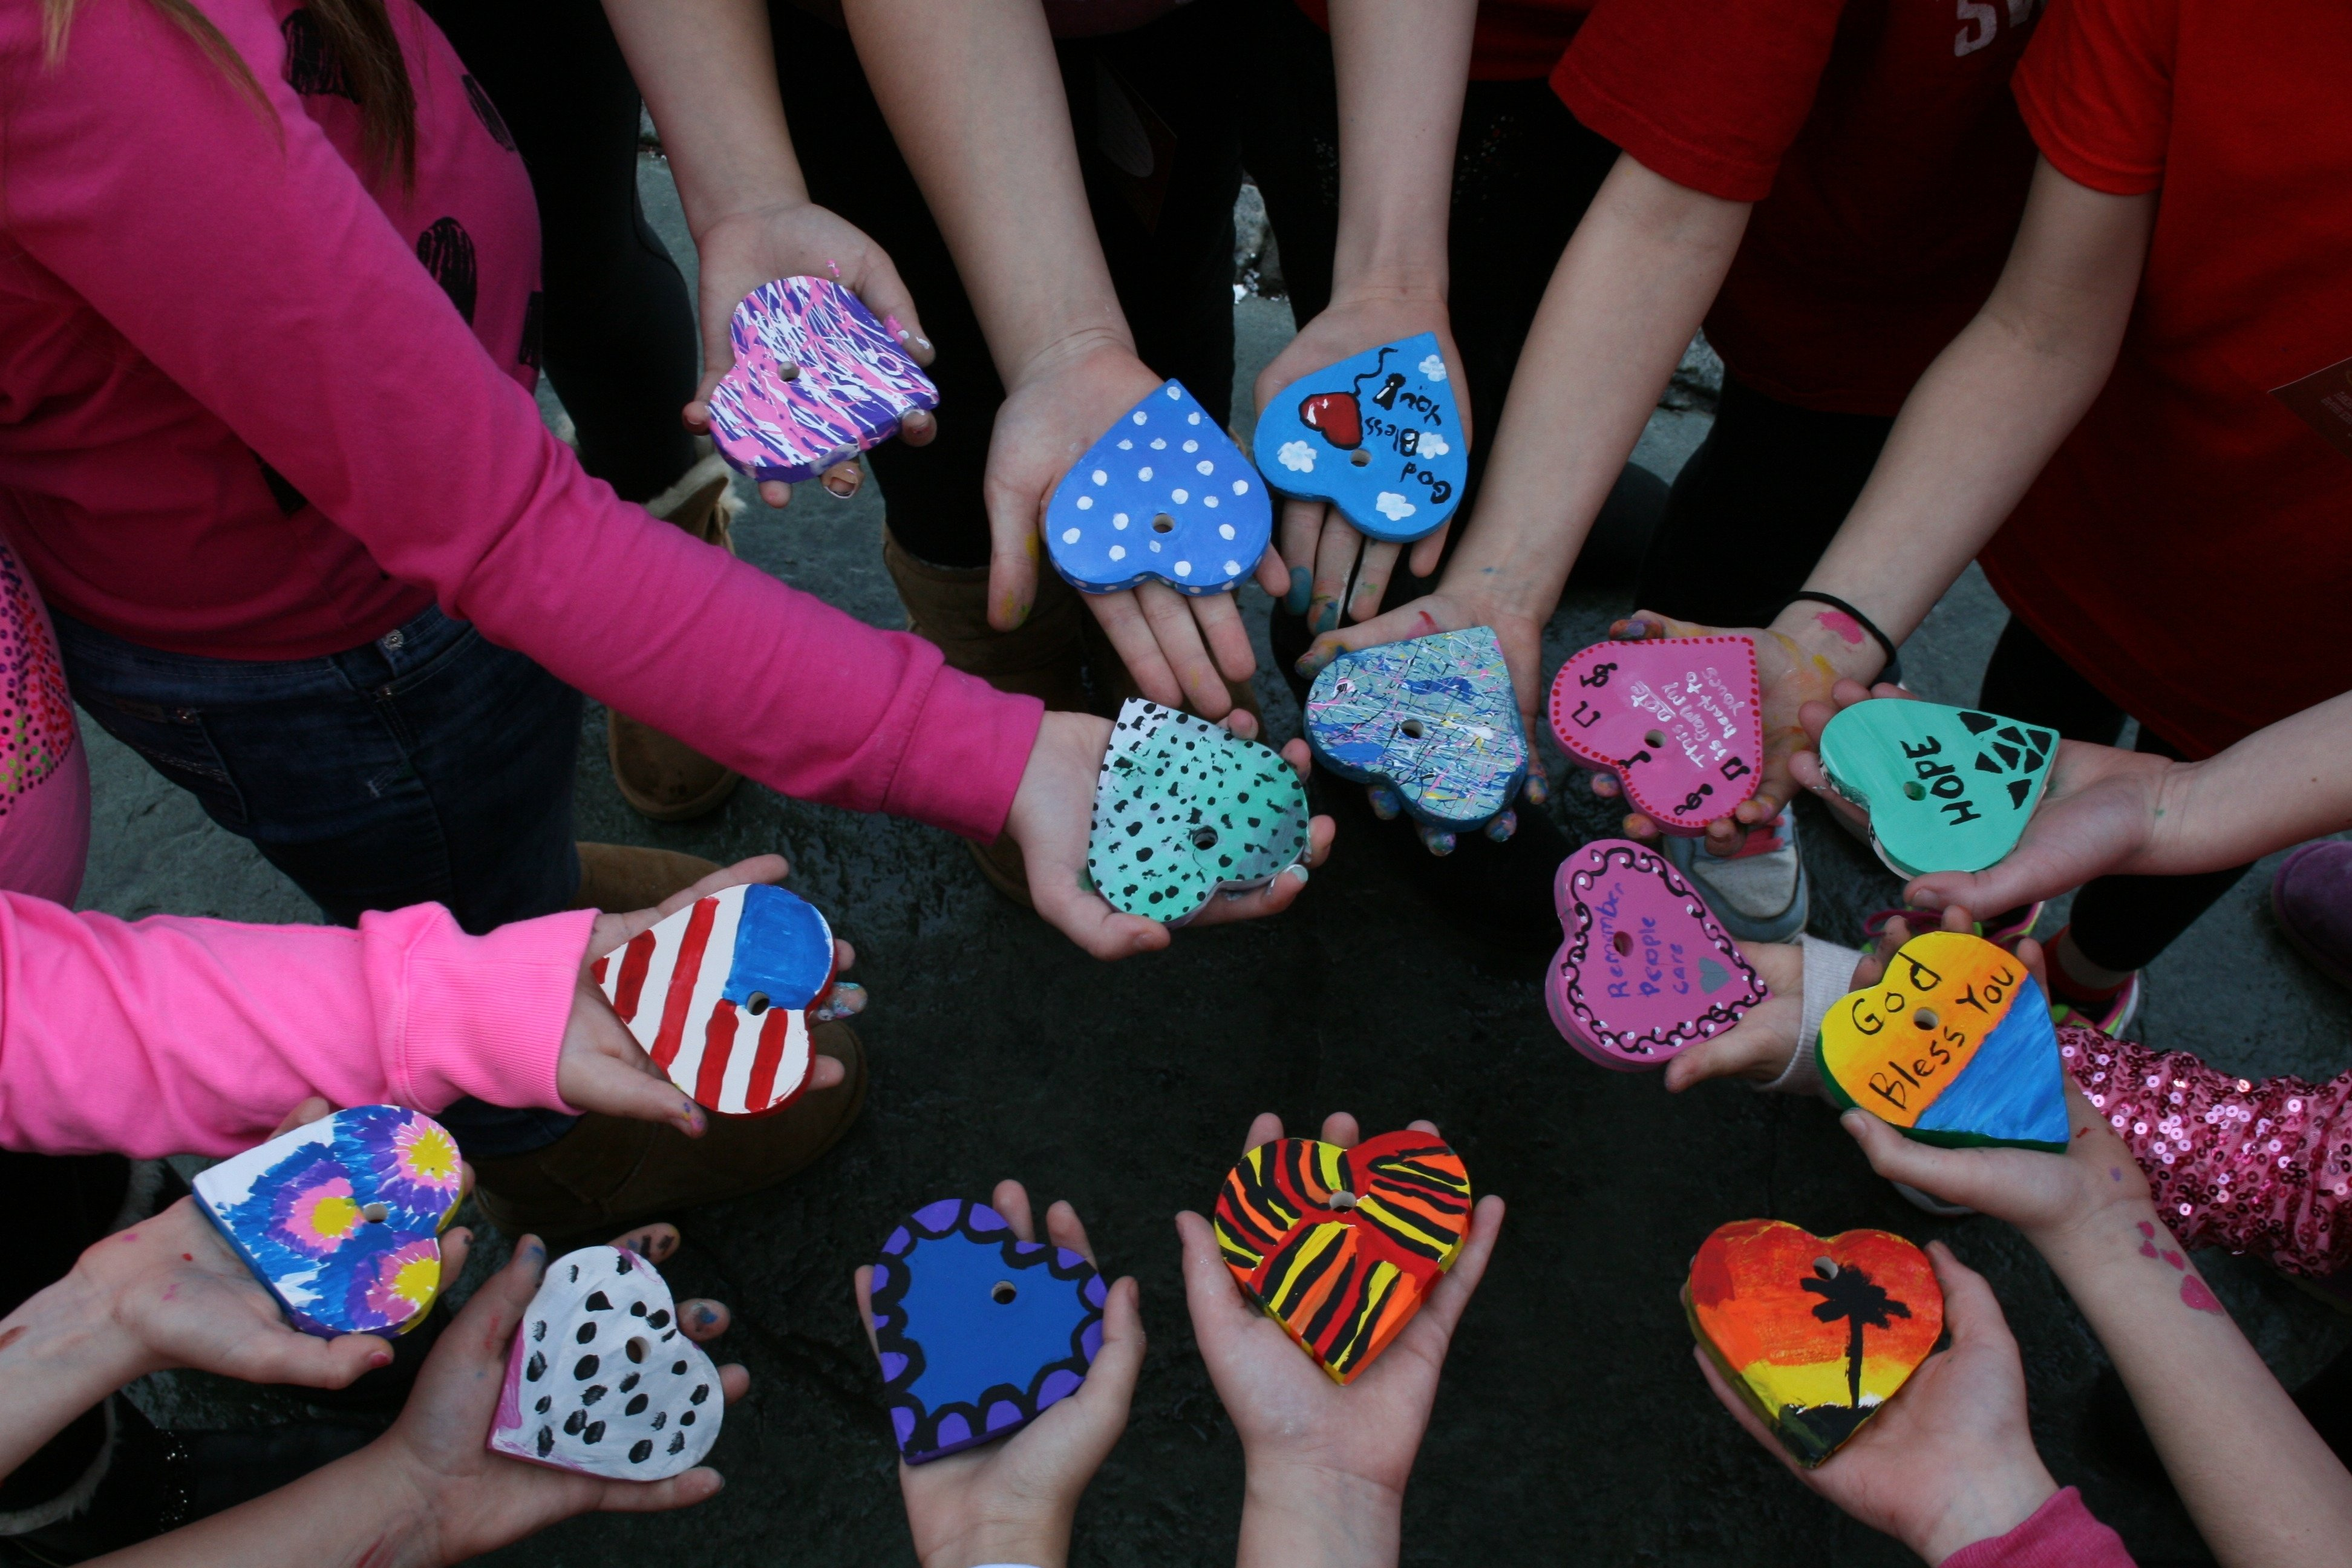 montville girl scouts 'pay it forward' with hearts of hope project